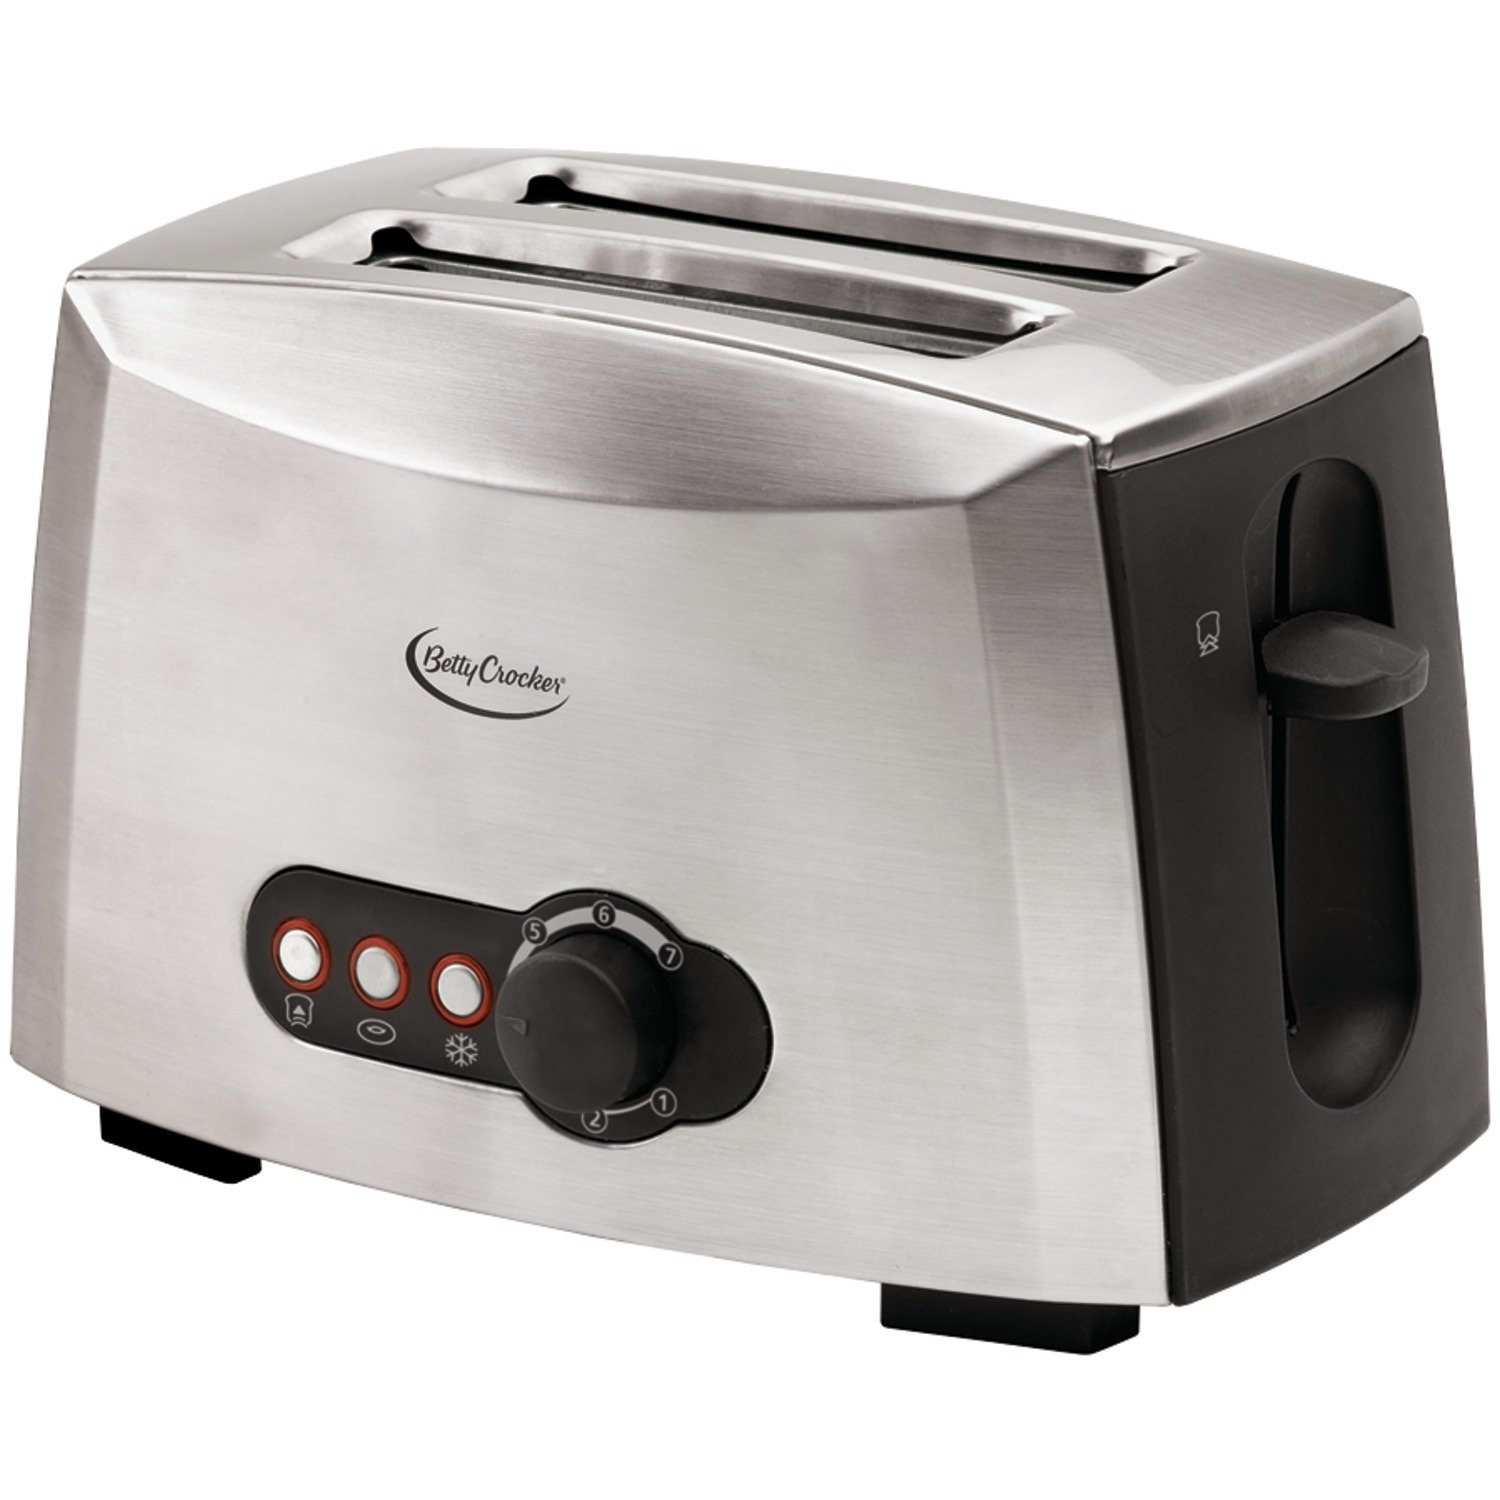 Betty Crocker BC-1618C RA28381 2-Slice Toaster, Brushed Stainless Steel